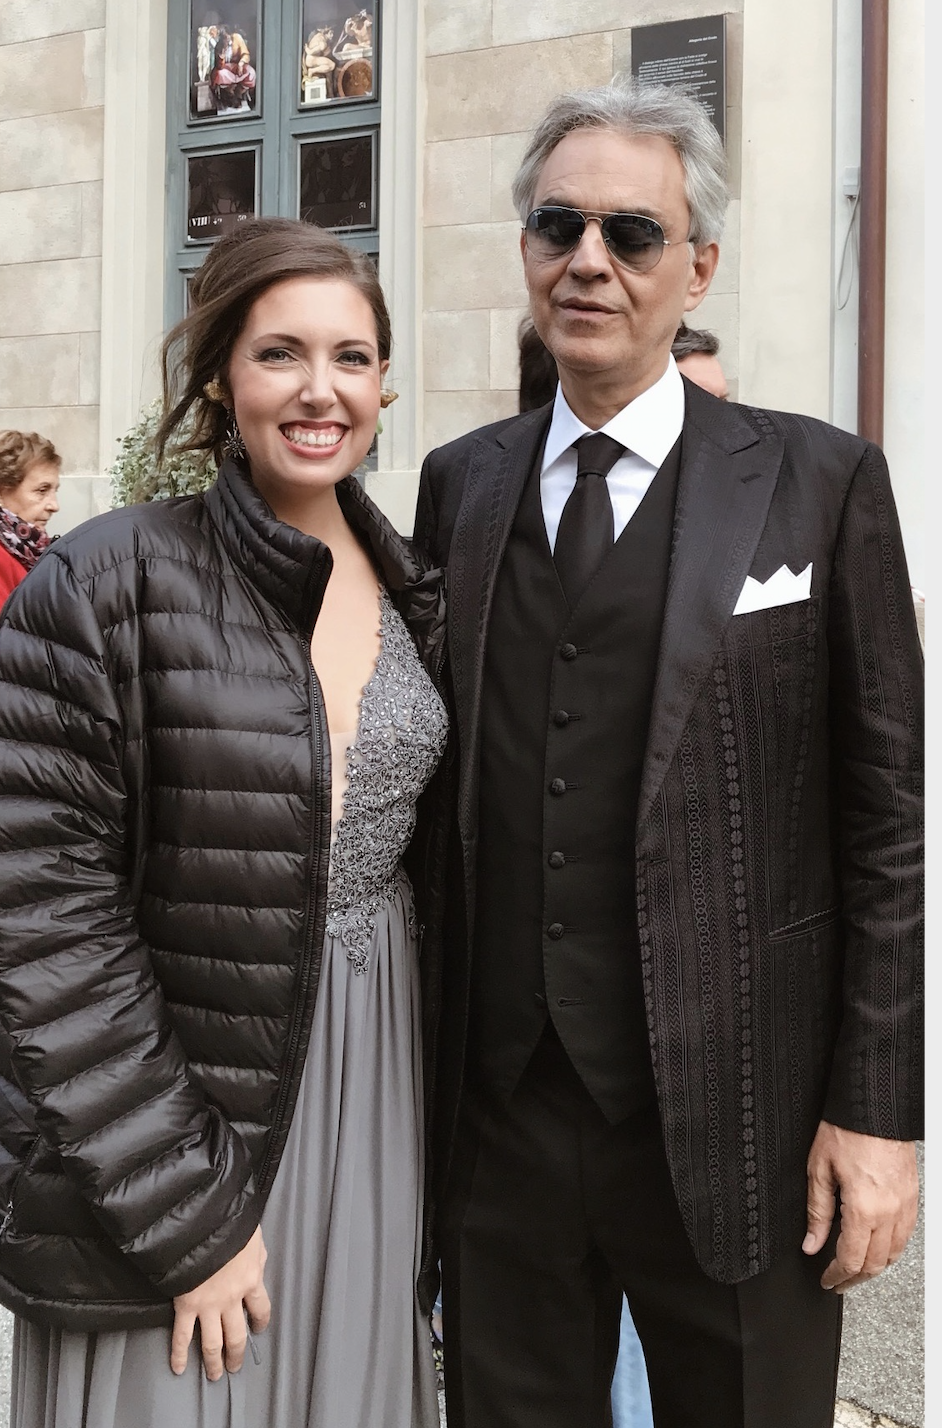 Francesca Battistelli as featured on Jesus Calling podcast; also imaged is Andre Bocelli